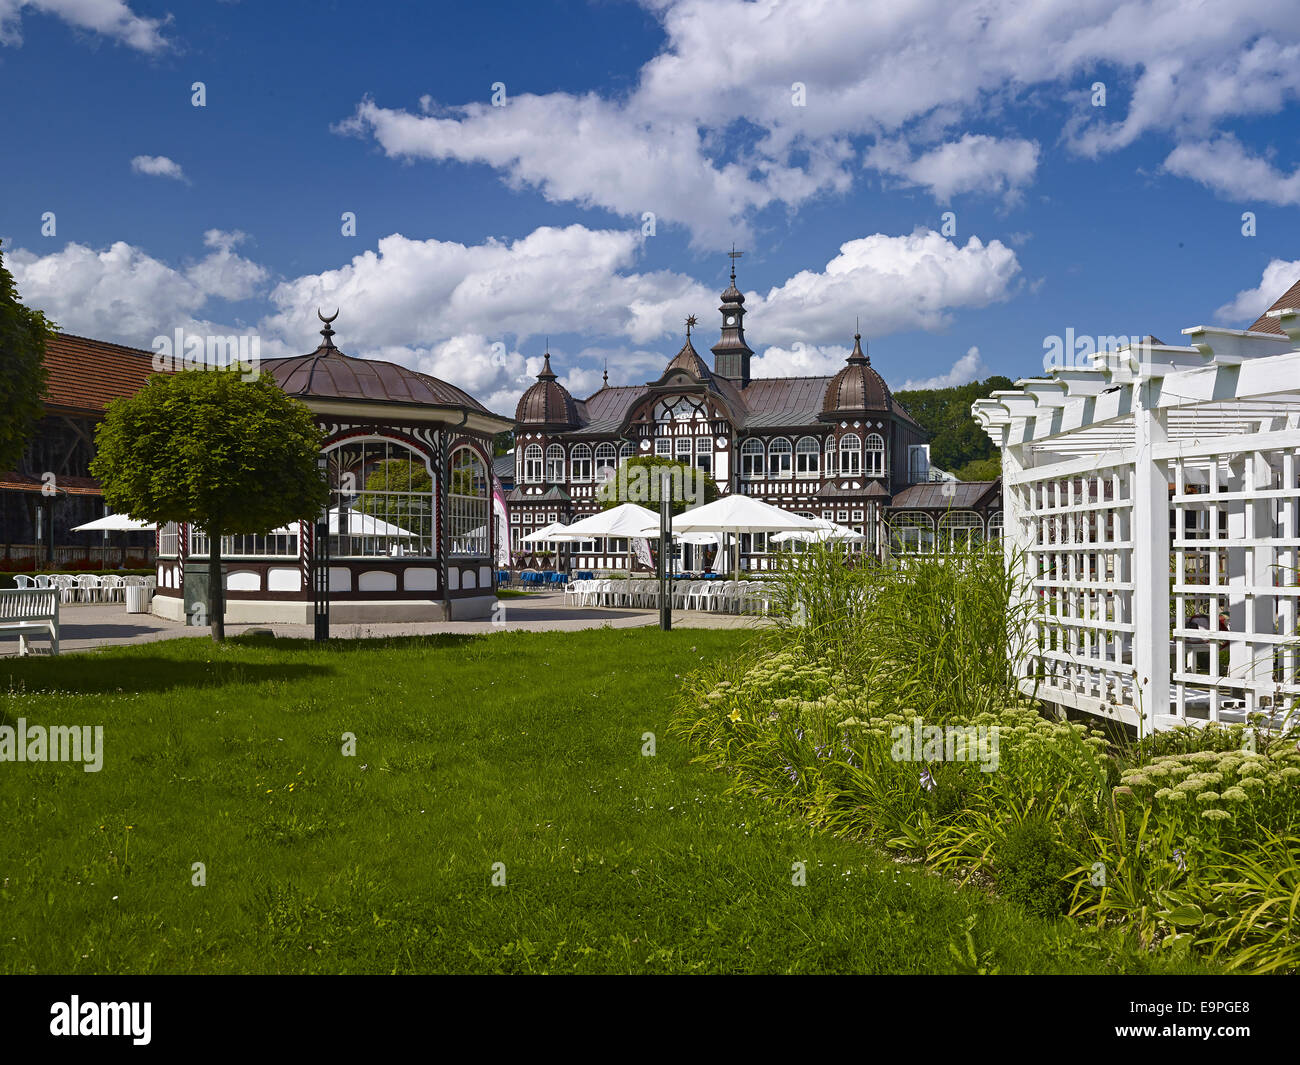 Spa of the graduation house in Bad Salzungen, Germany - Stock Image